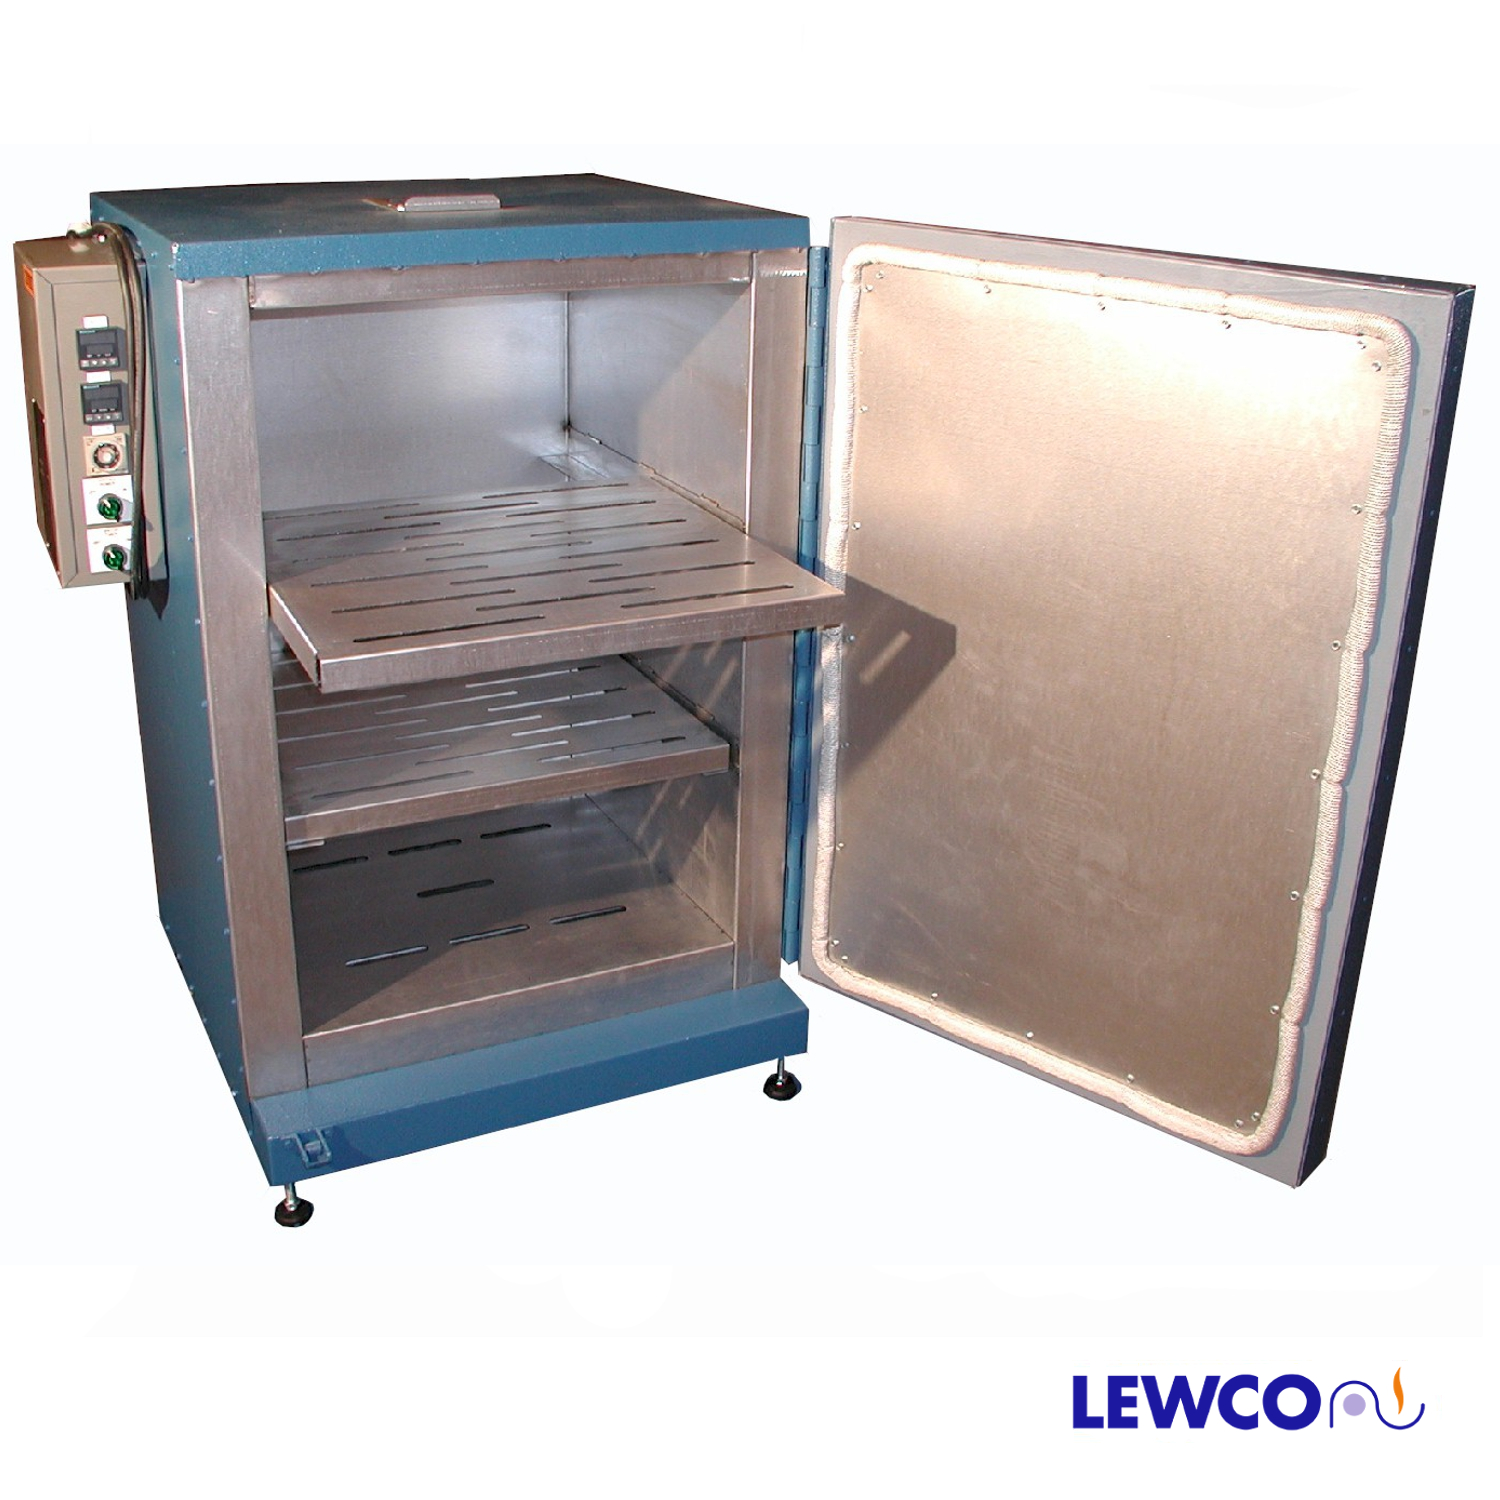 Cabinet Oven with Shelves – Lewco Ovens